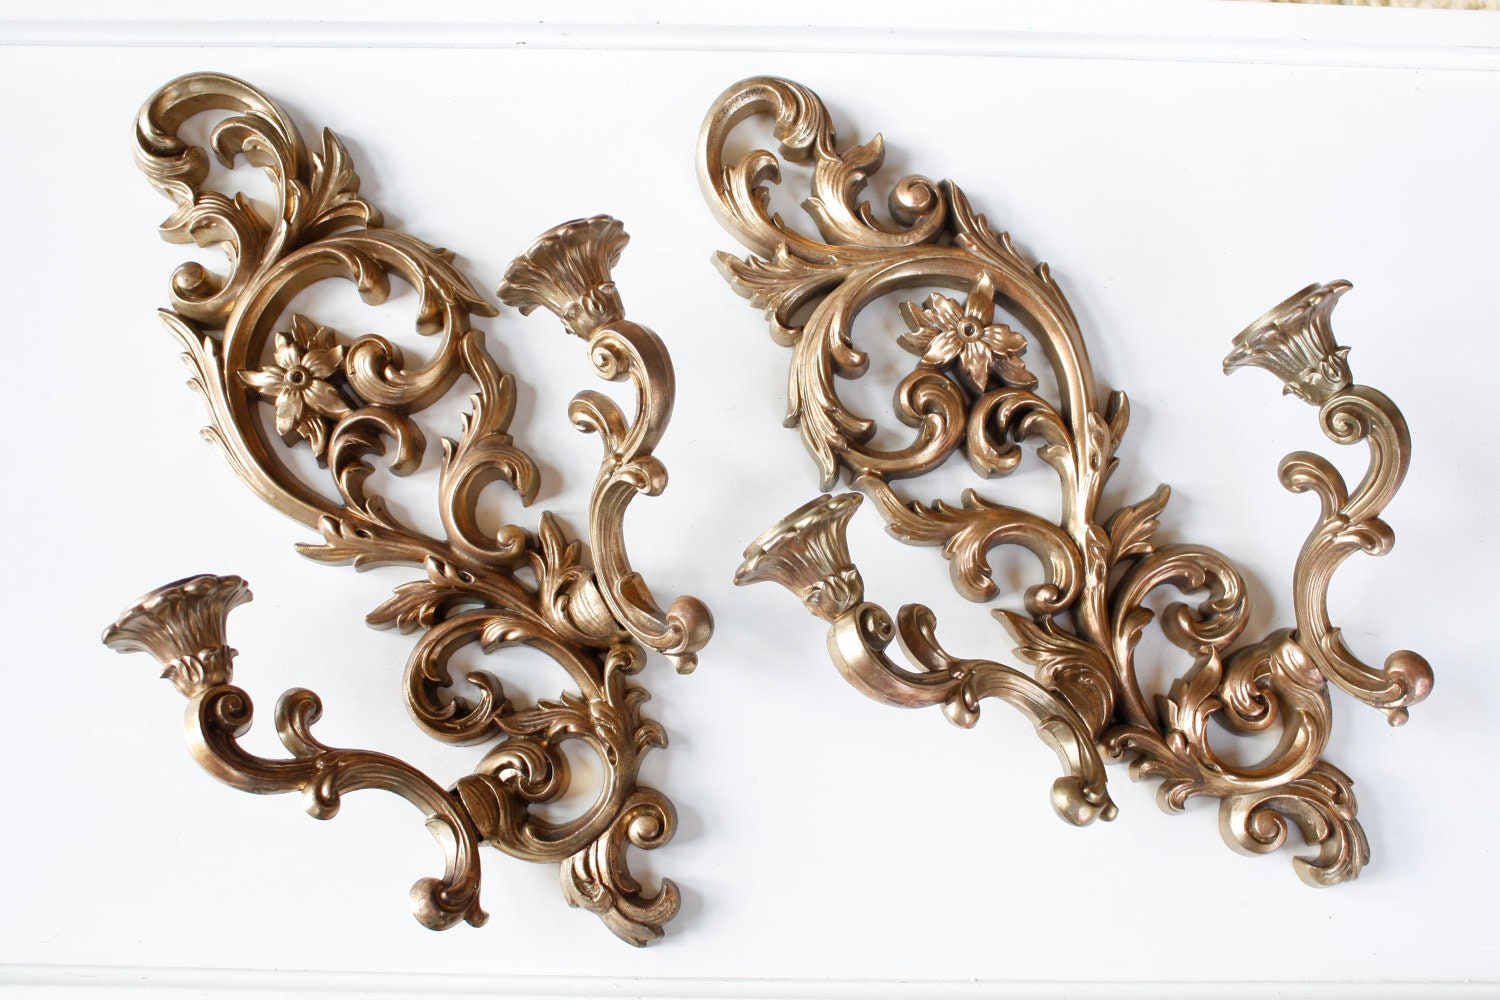 Candle Wall Sconces Vintage : Vintage Syroco Like Wall Sconce Candle Holder Ornate